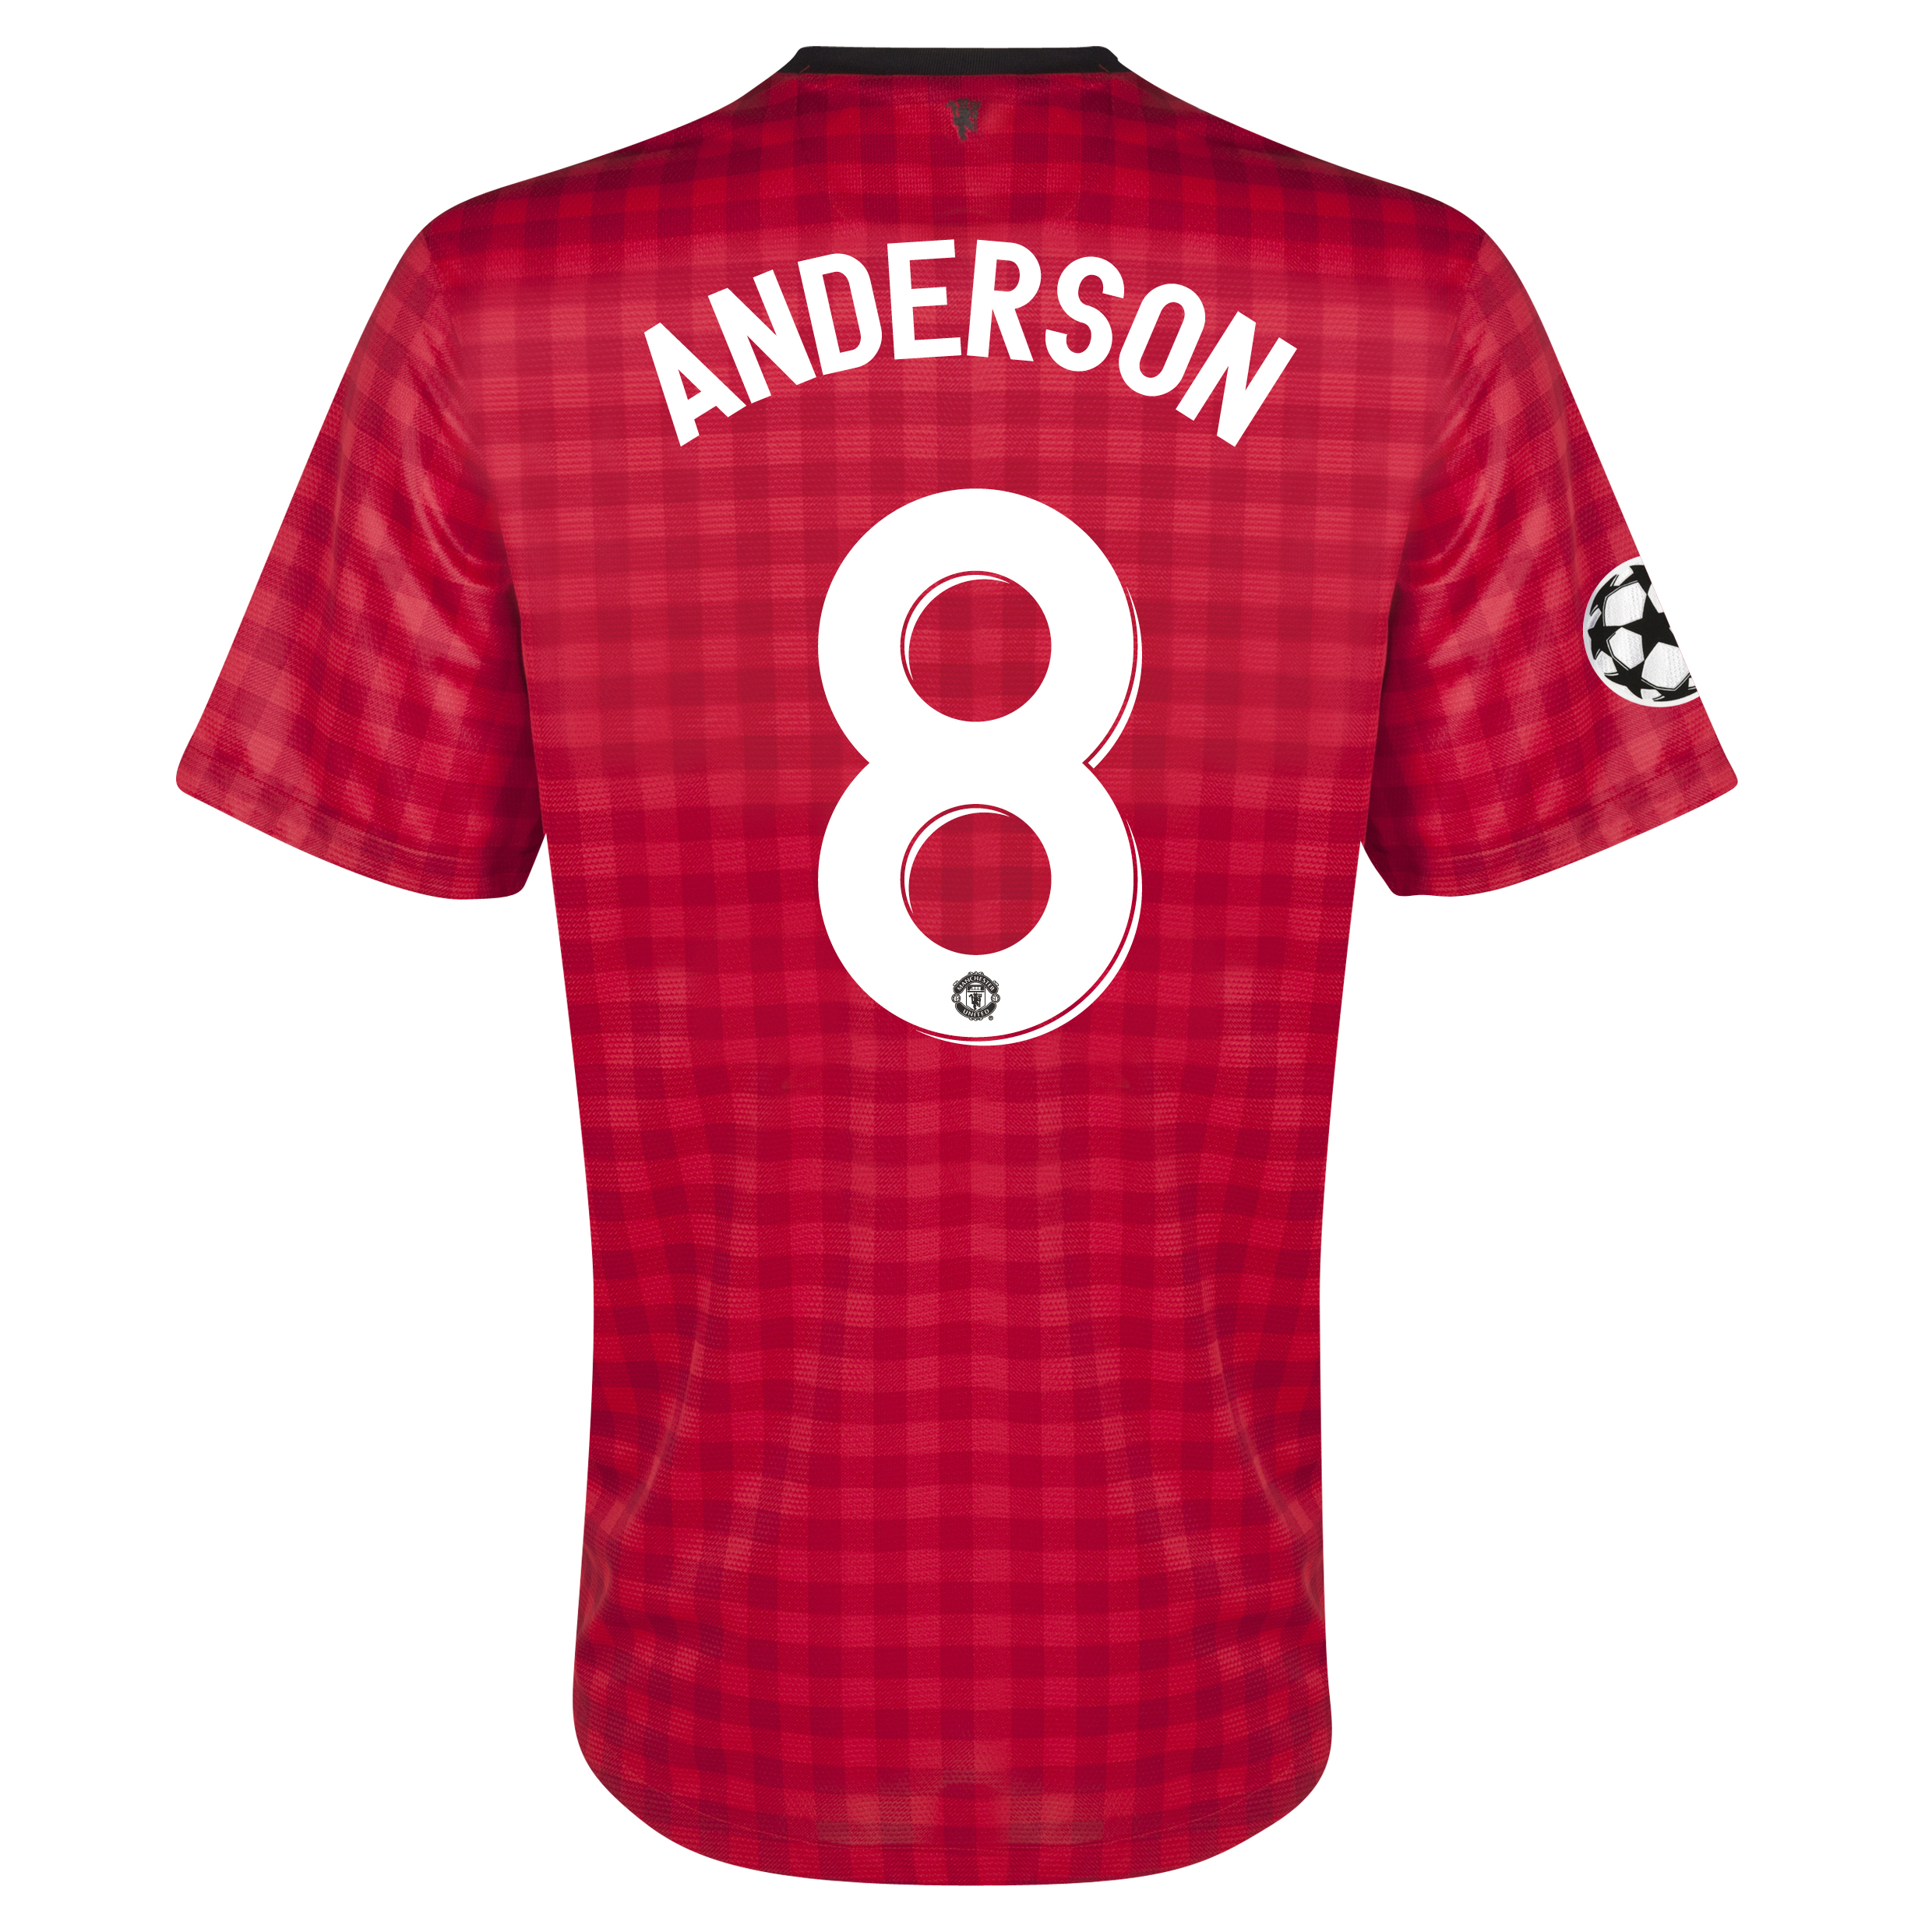 Man United UEFA Champions League Home Shirt 2012/13  - Youths with Anderson 8 printing